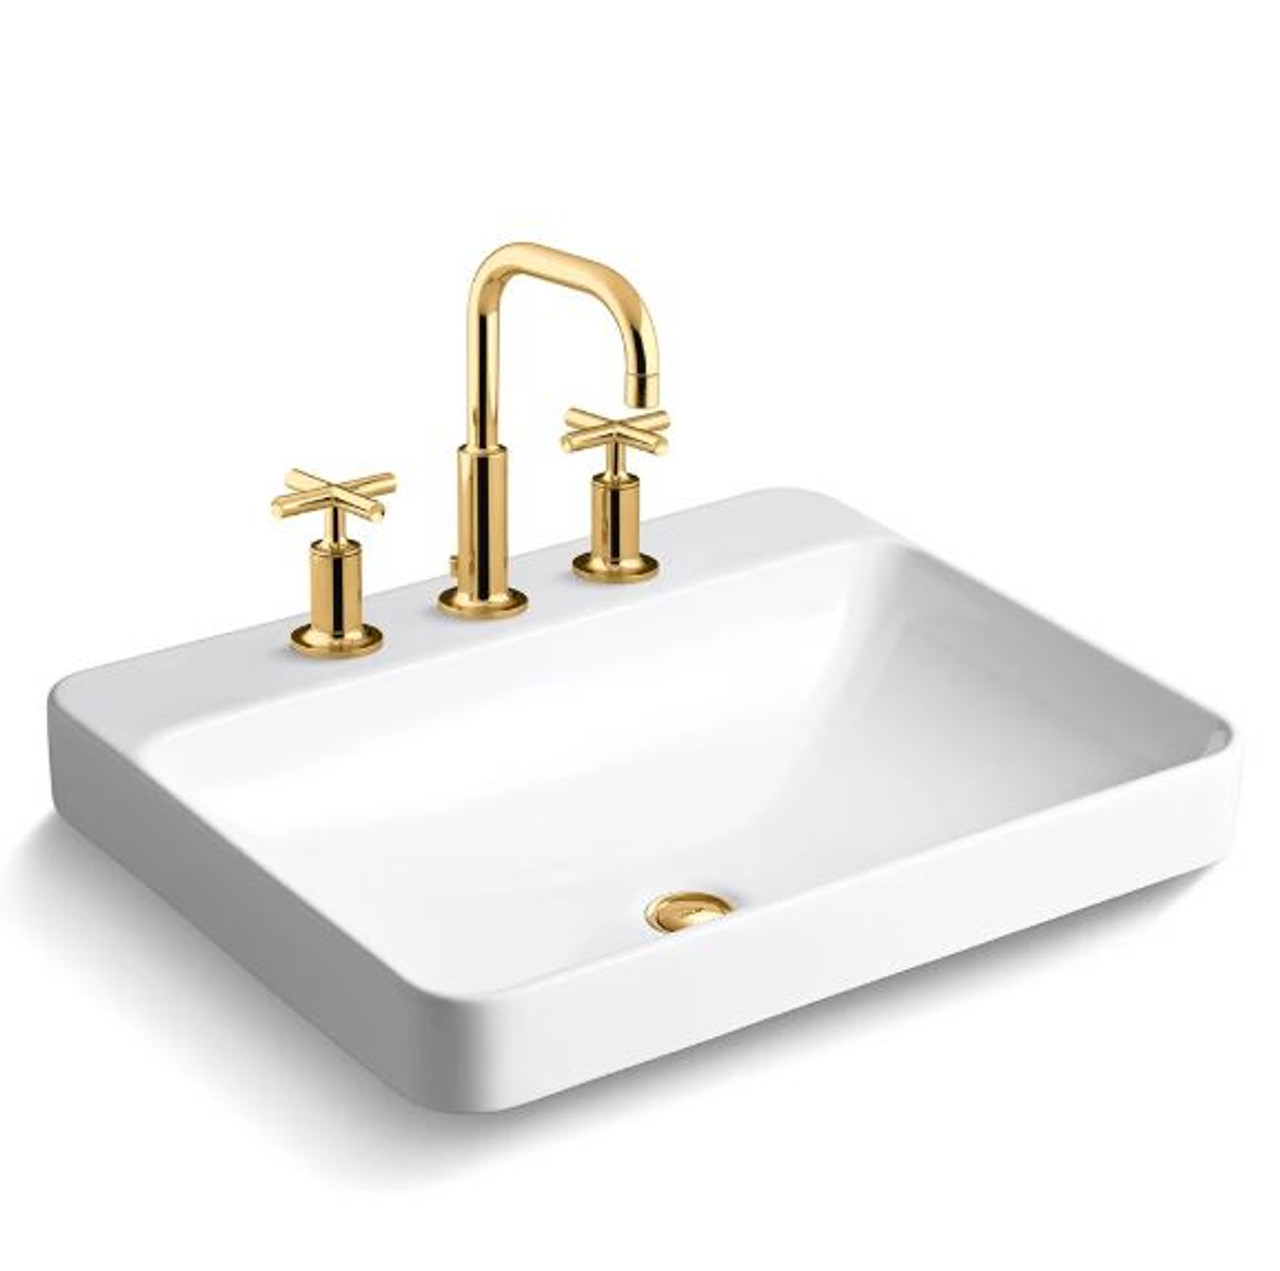 https royalbathplace com kohler vox 22 vessel sink with overflow and purist widespread bathroom faucet with pop up drain assembly